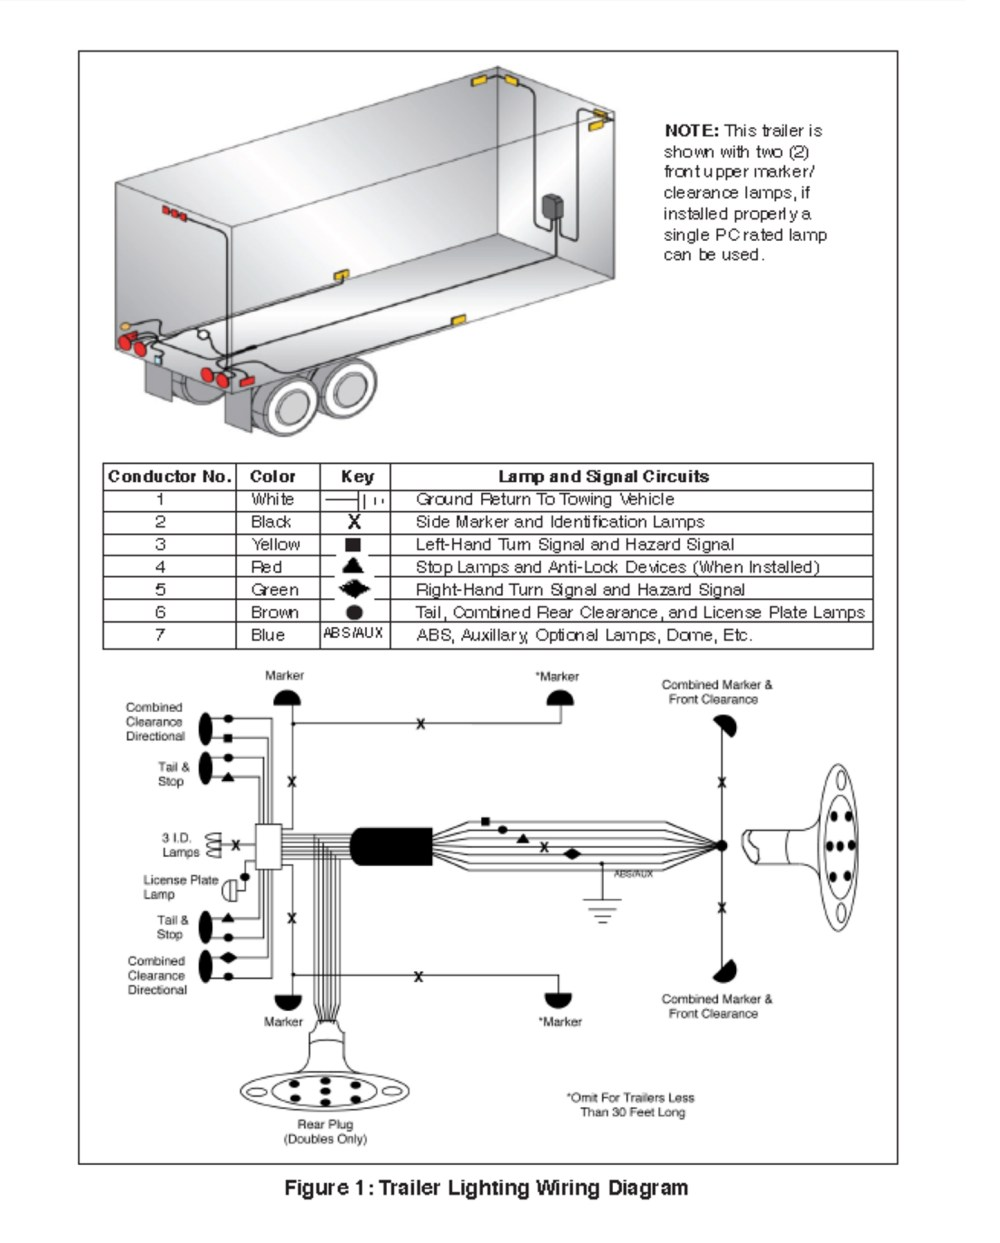 medium resolution of know about trailer lighting and wiring article truckinginfocom know about trailer lighting and wiring article truckinginfocom